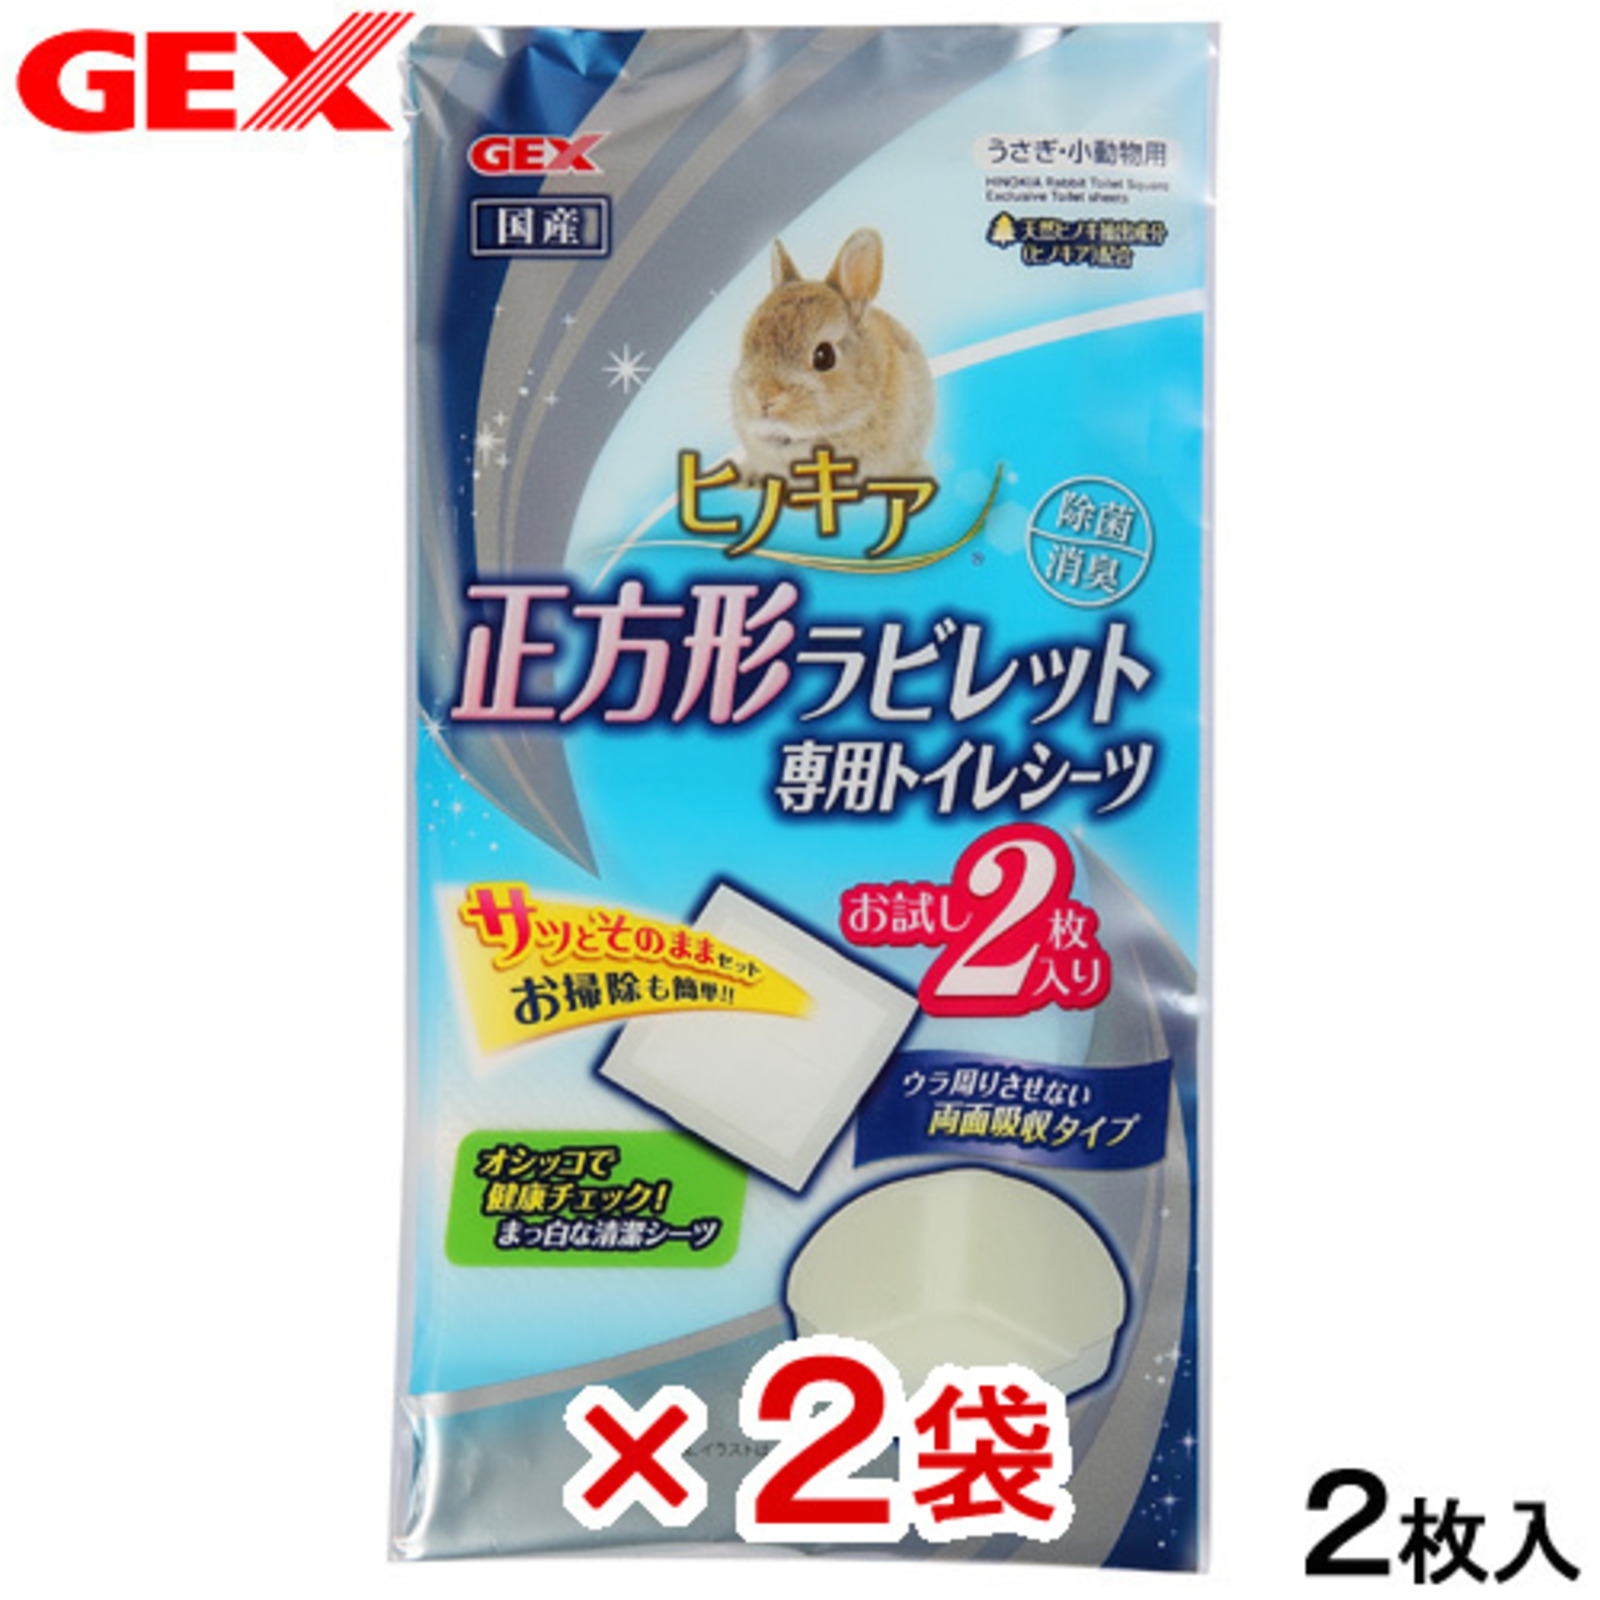 Gex Hinokia Square Toilet Sheets 2Pc Trial